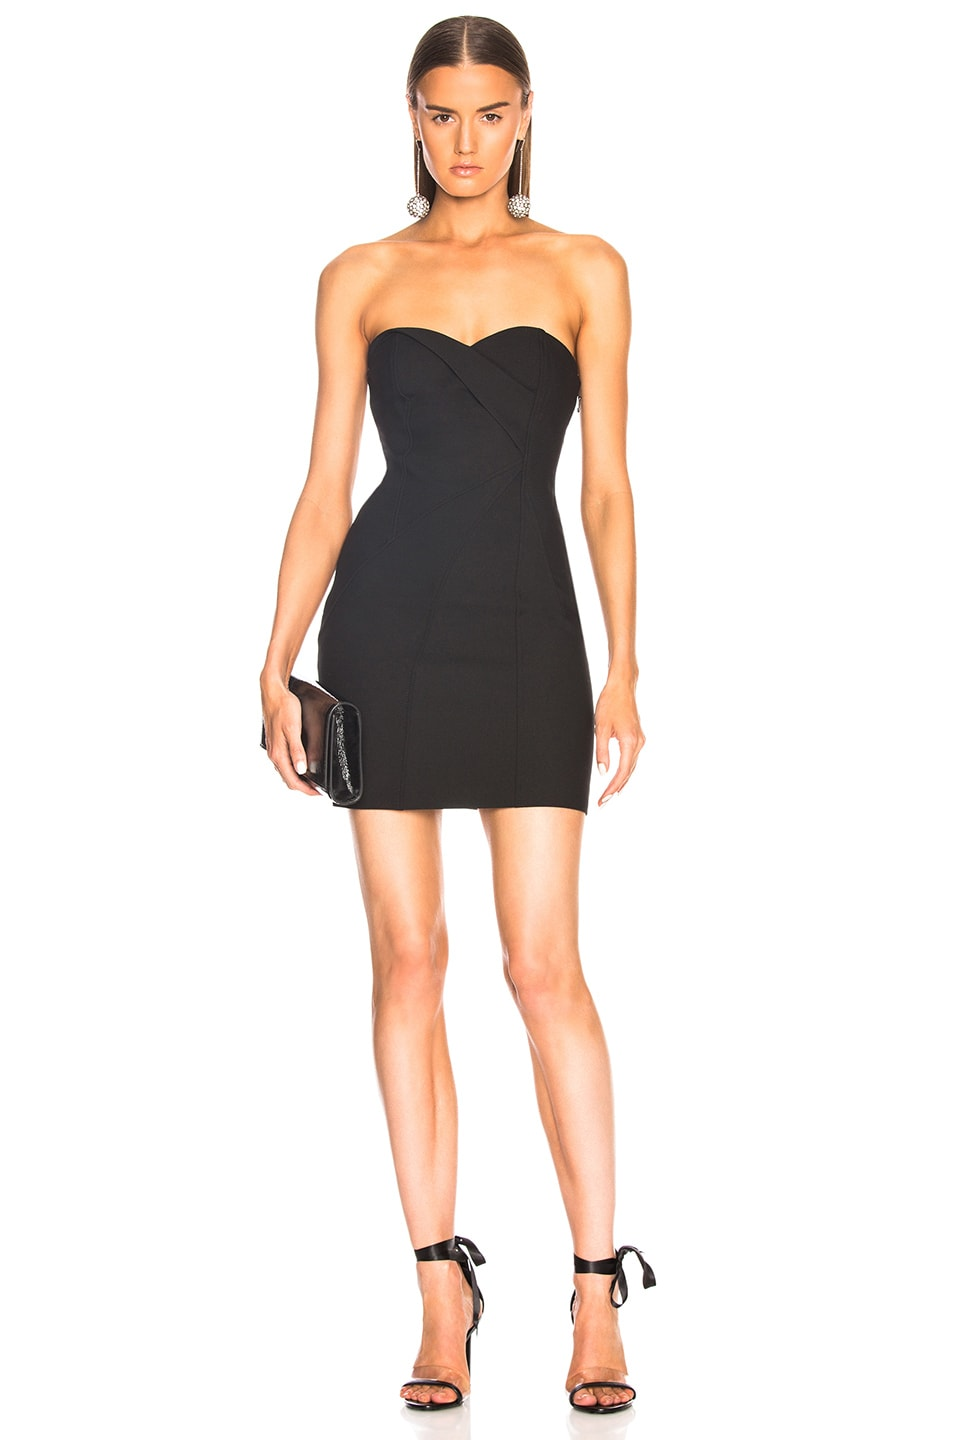 Very Cheap Cheap Online Cheap The Cheapest for FWRD Tristen Dress in Black Cinq à Sept WBk0W5mA